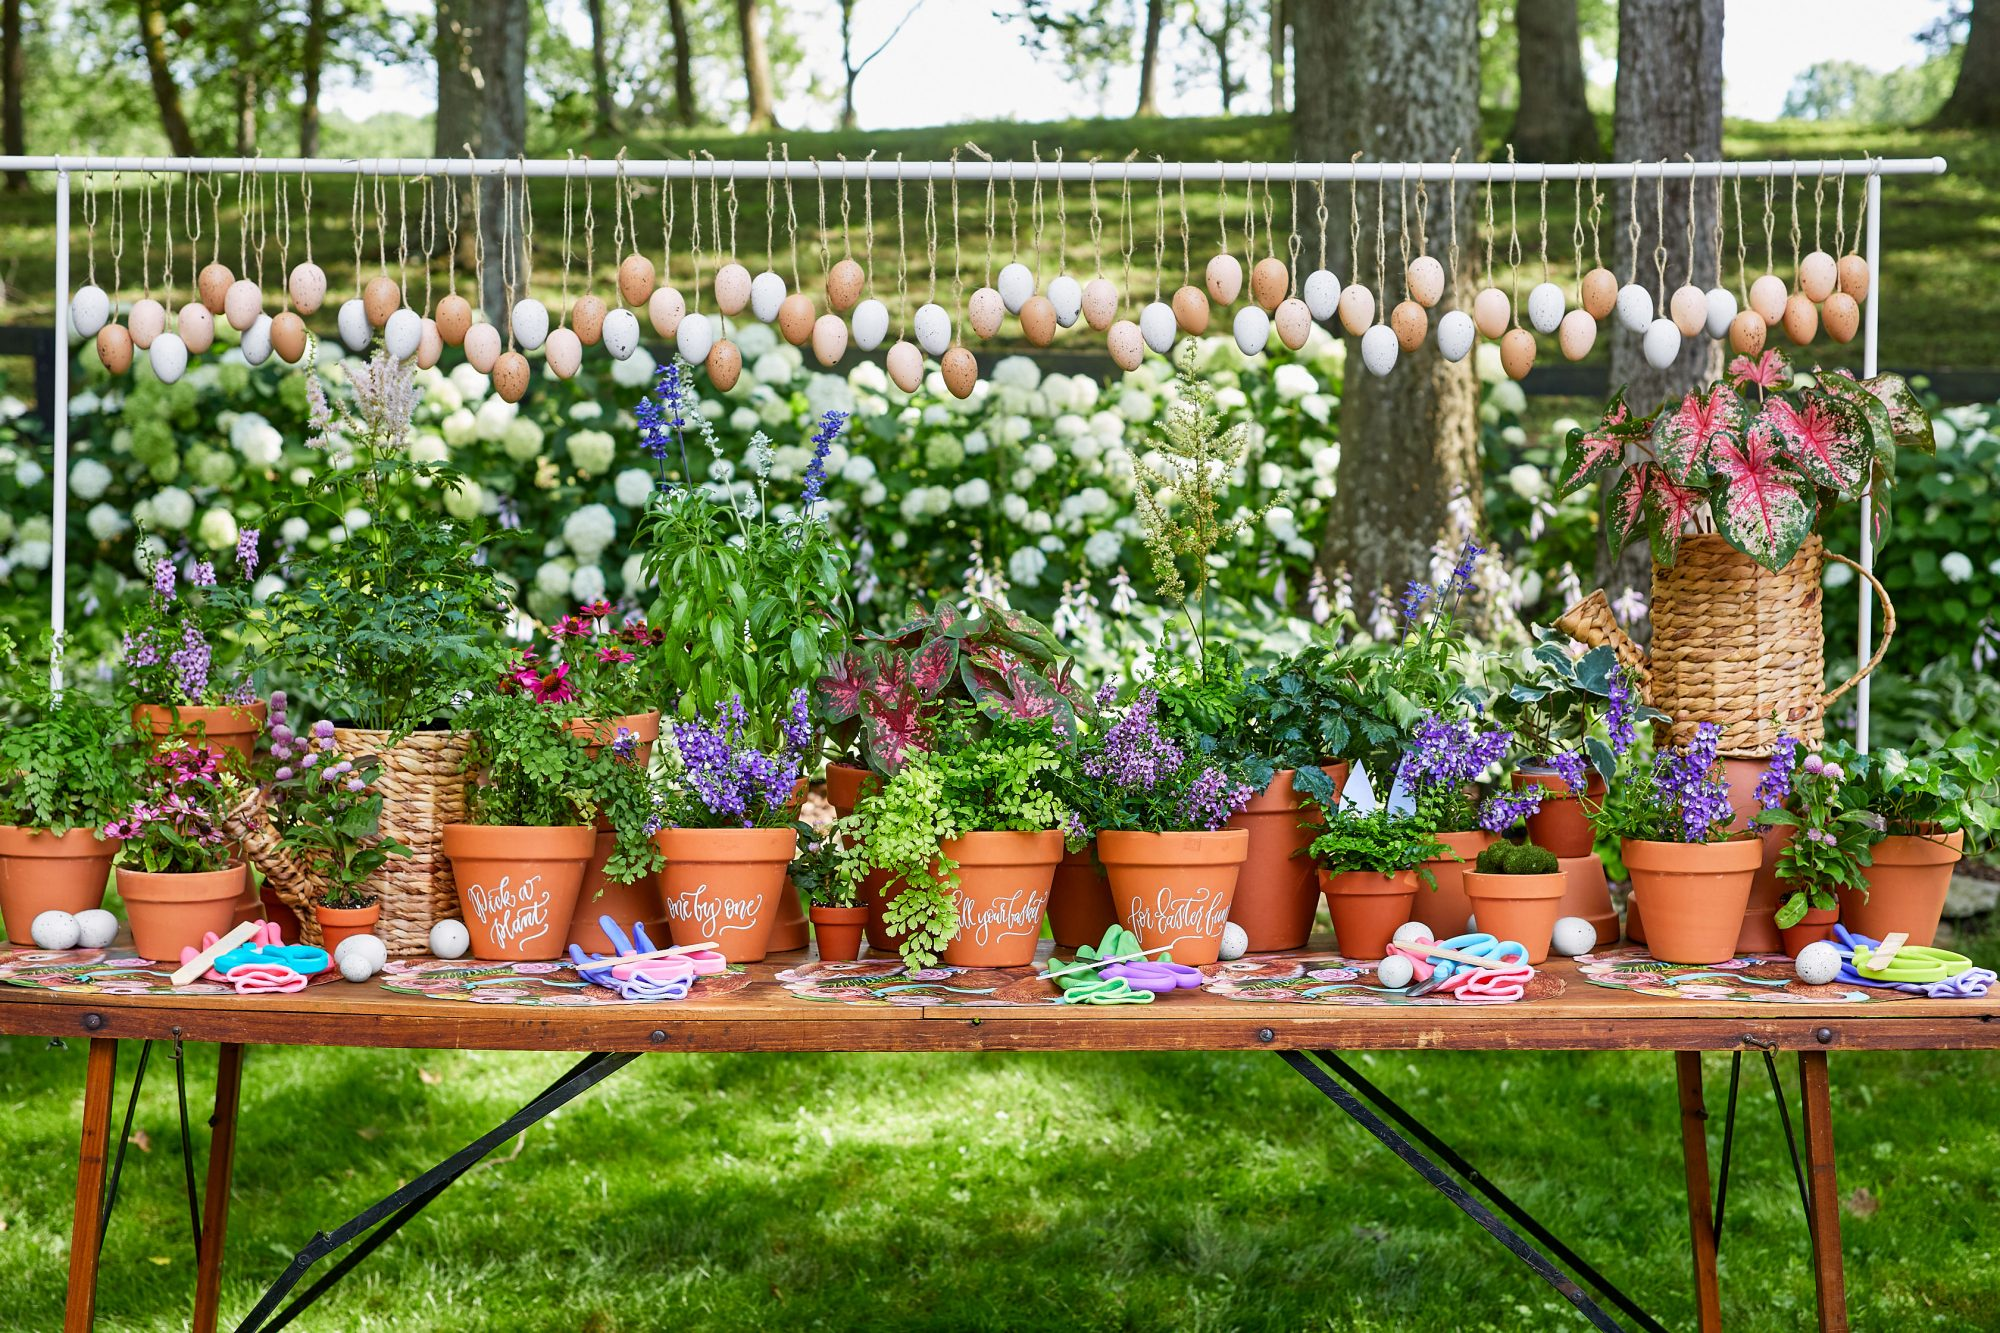 Outdoor Table covered in potted flowers with hanging eggs above